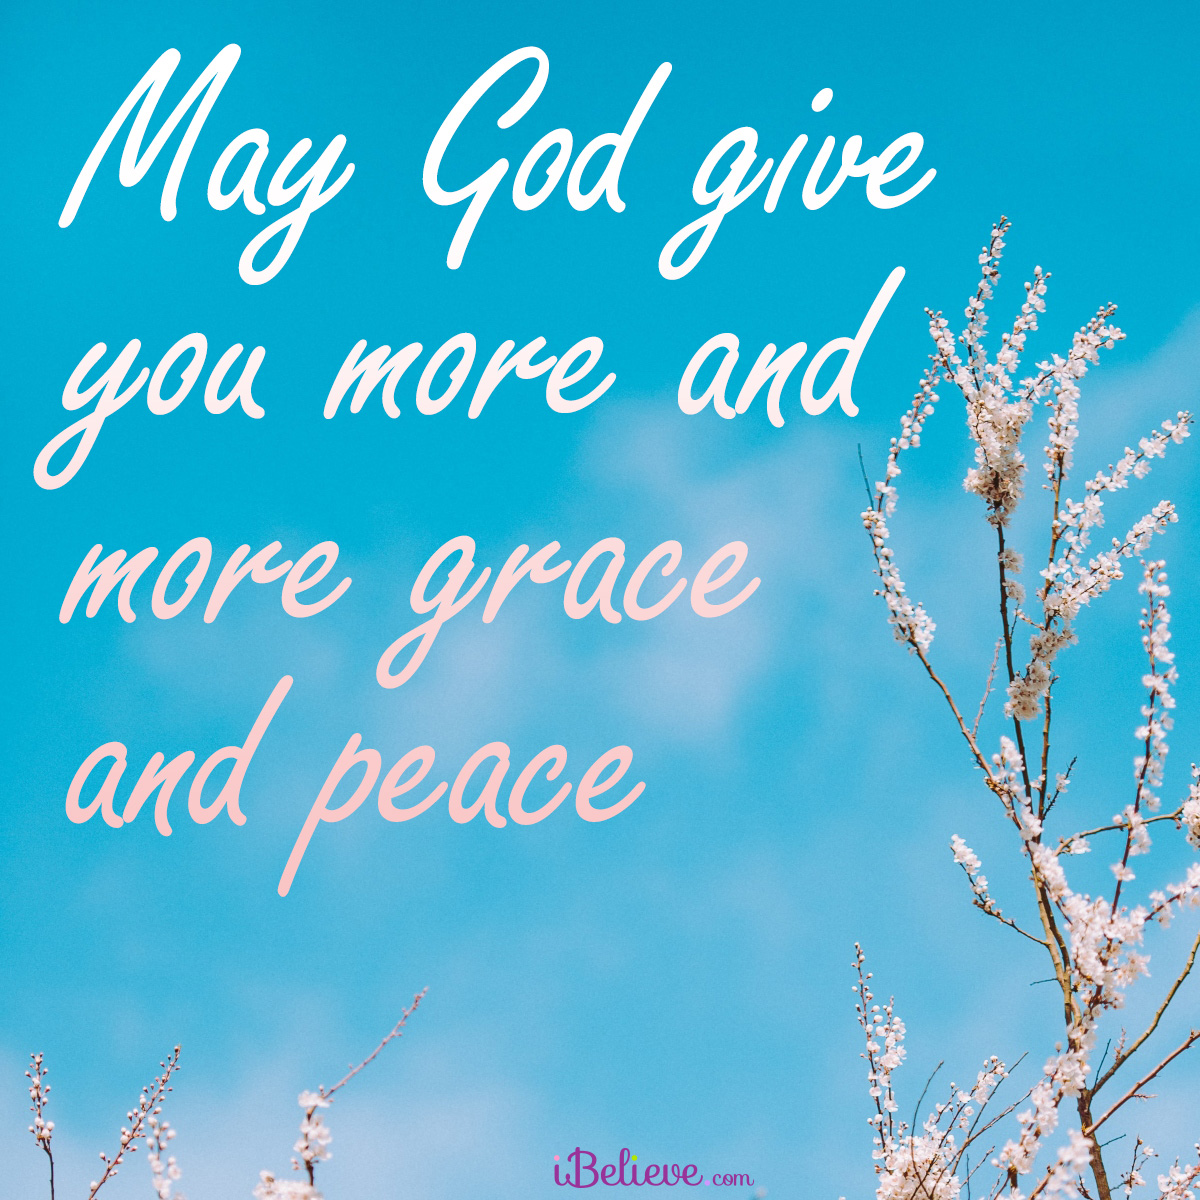 more and more grace and peace